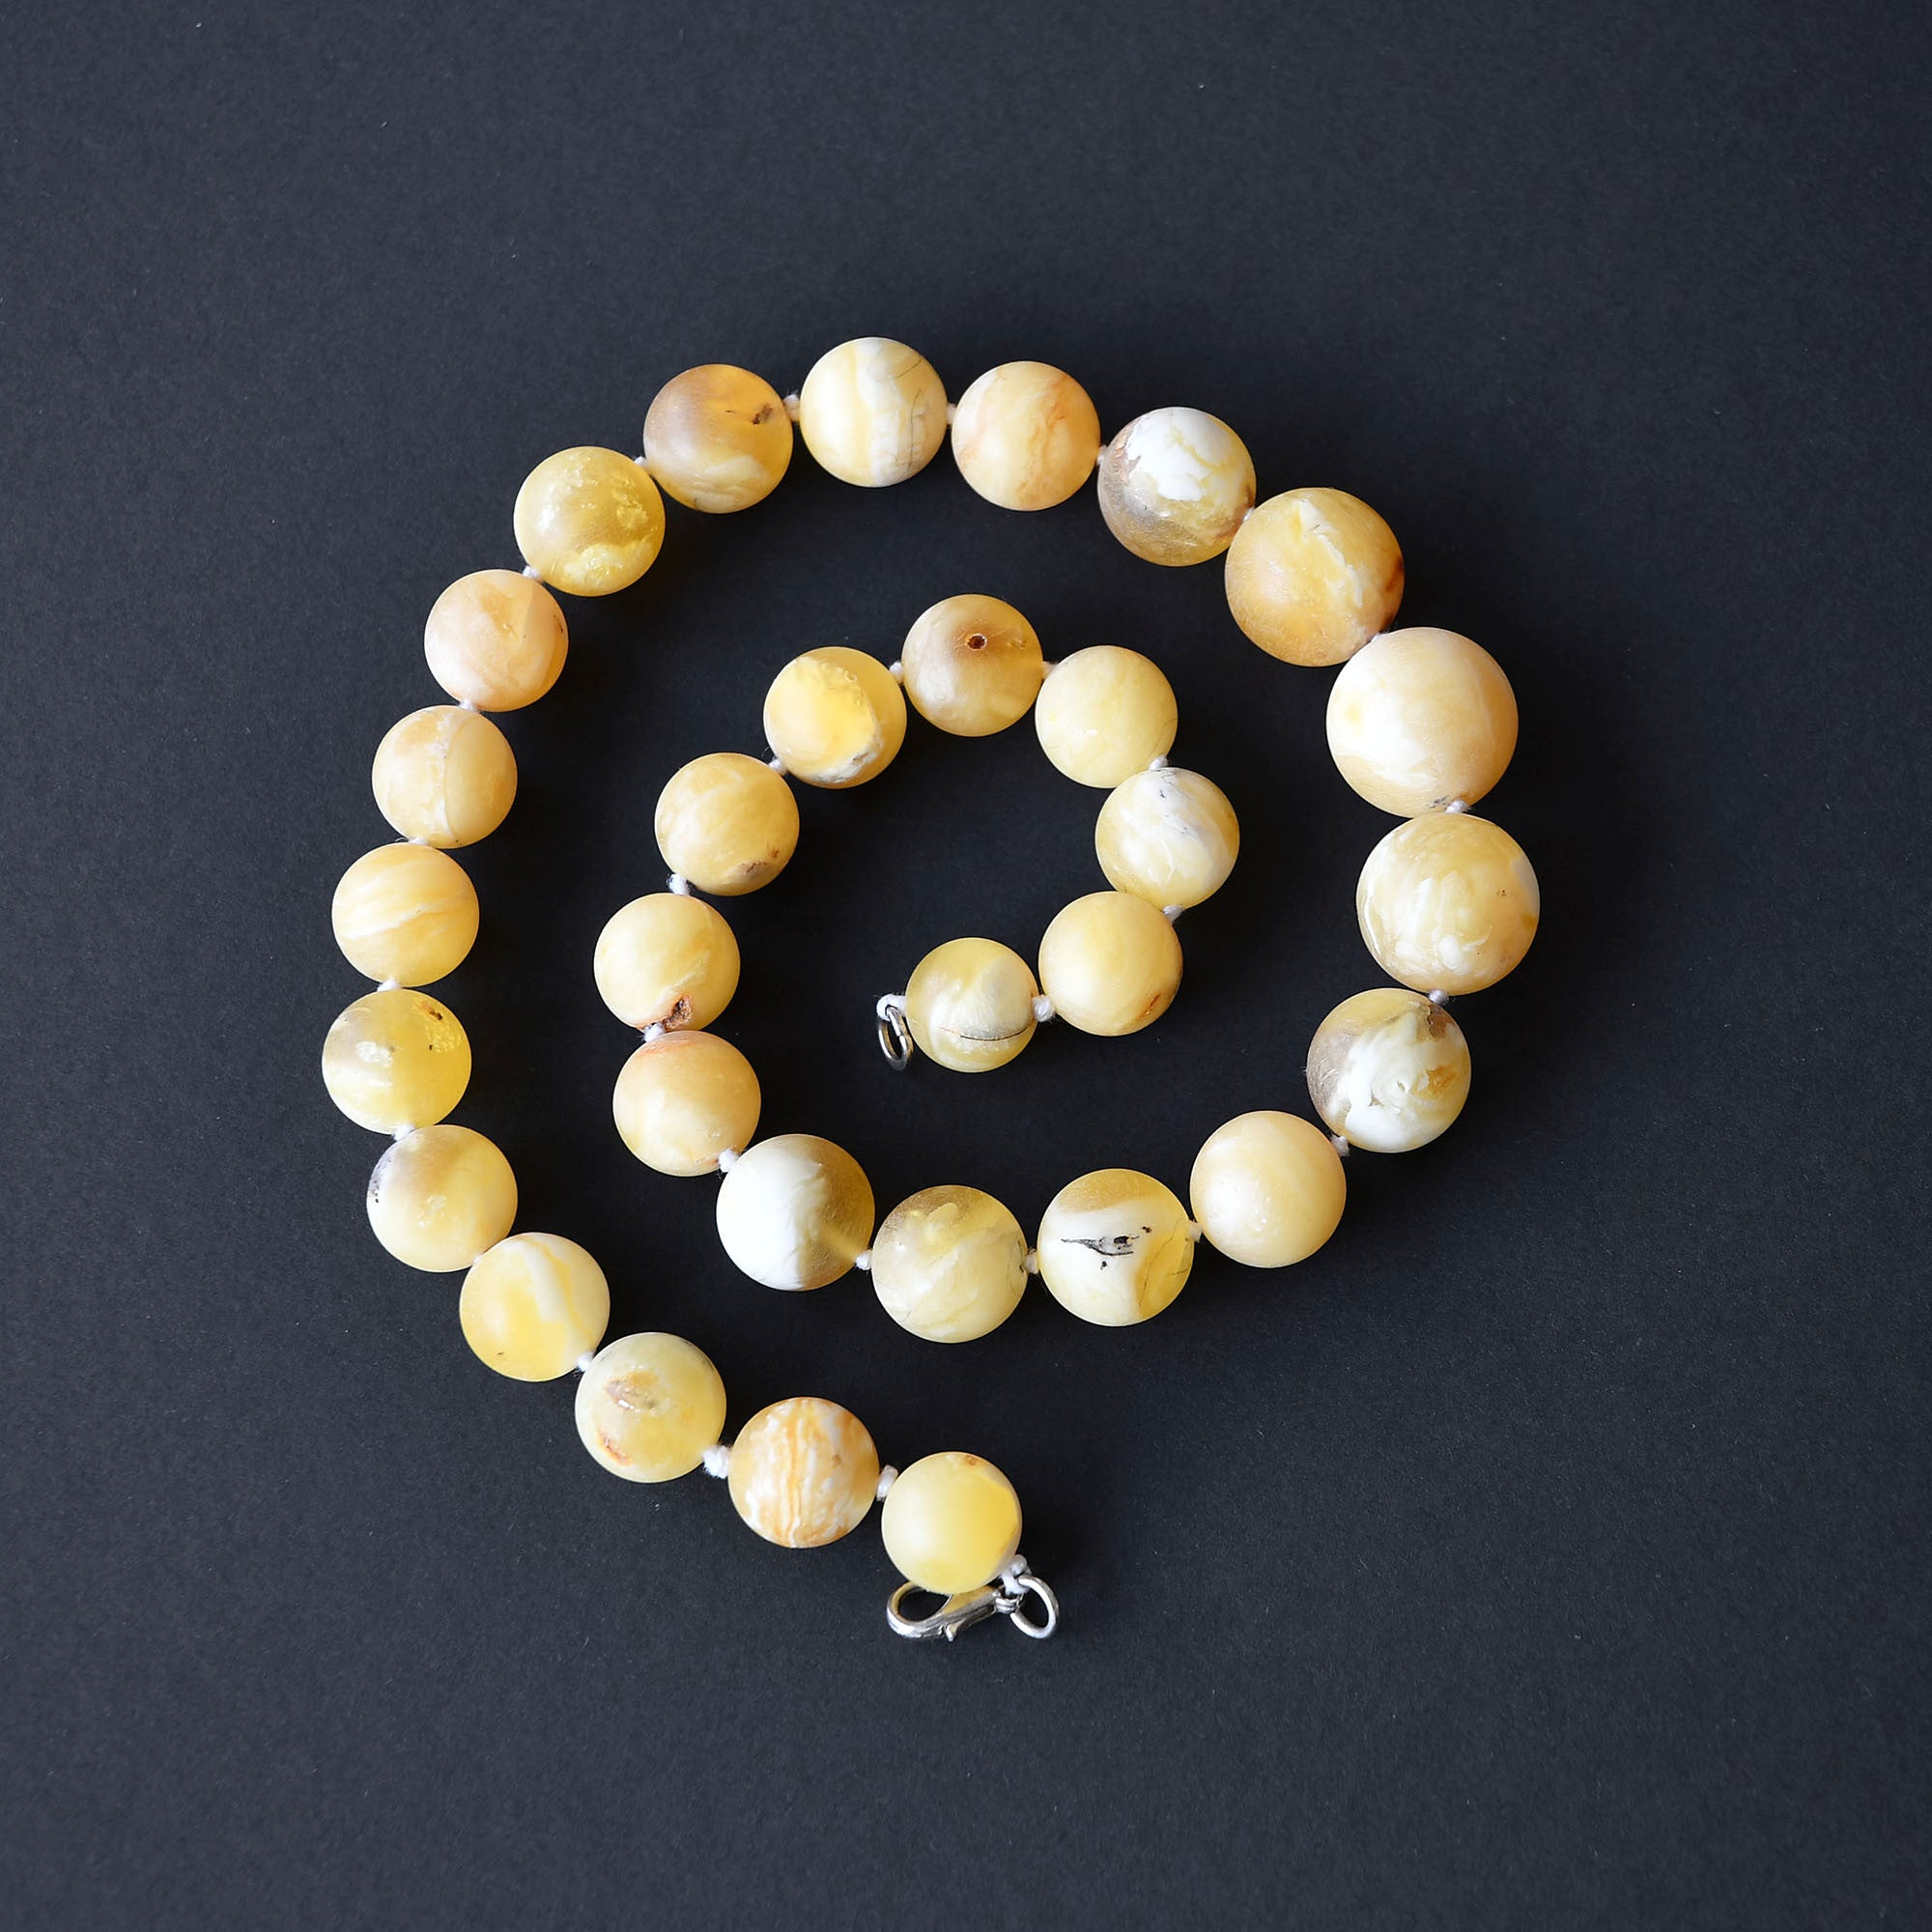 Round bead necklace of white unpolished amber and silver fastening